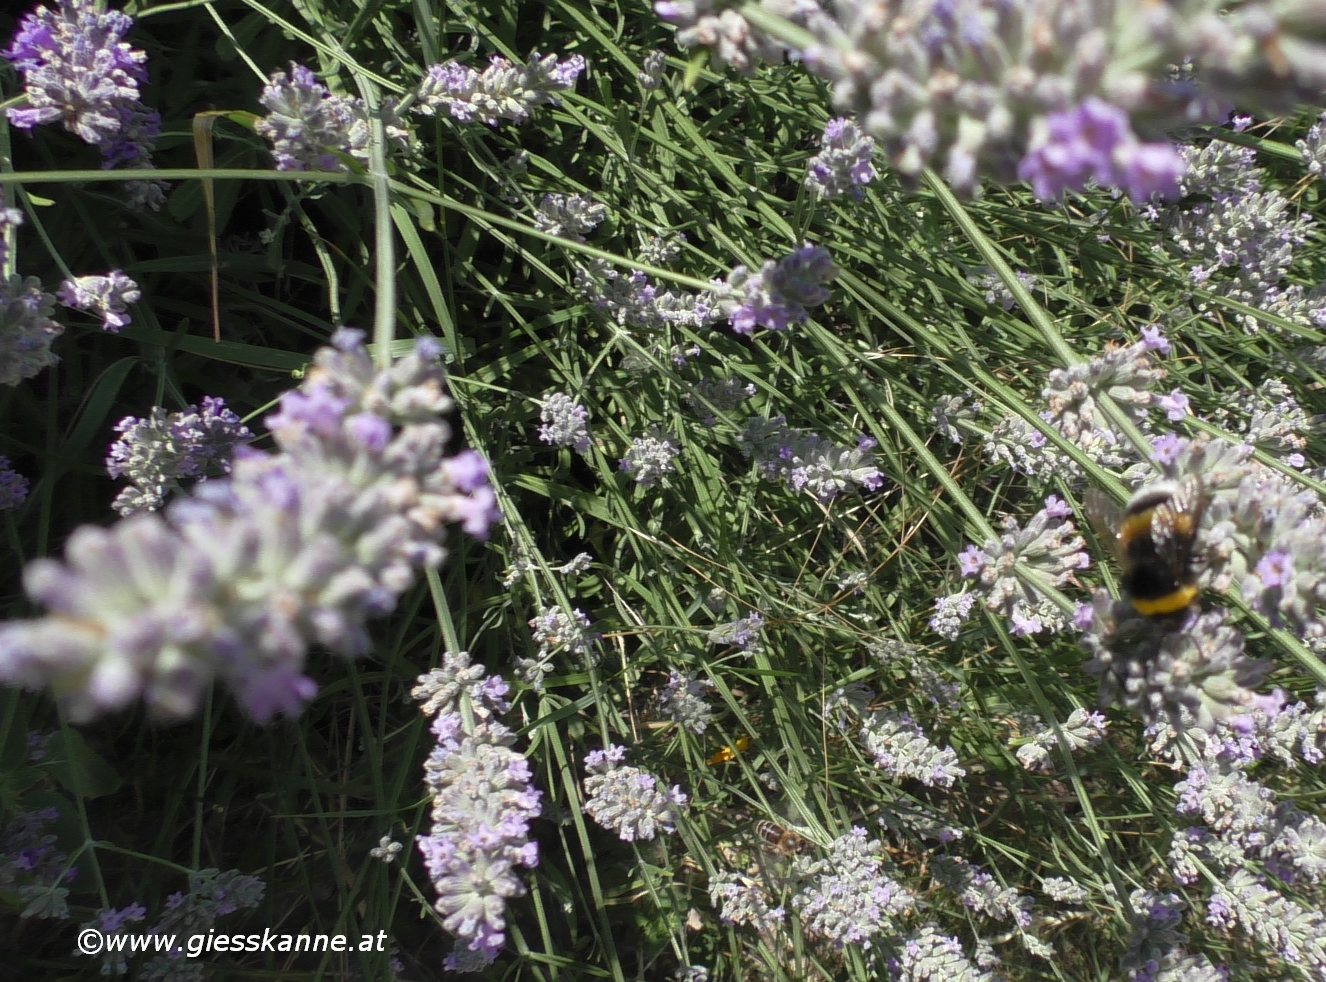 Lavendel Giesskanne At